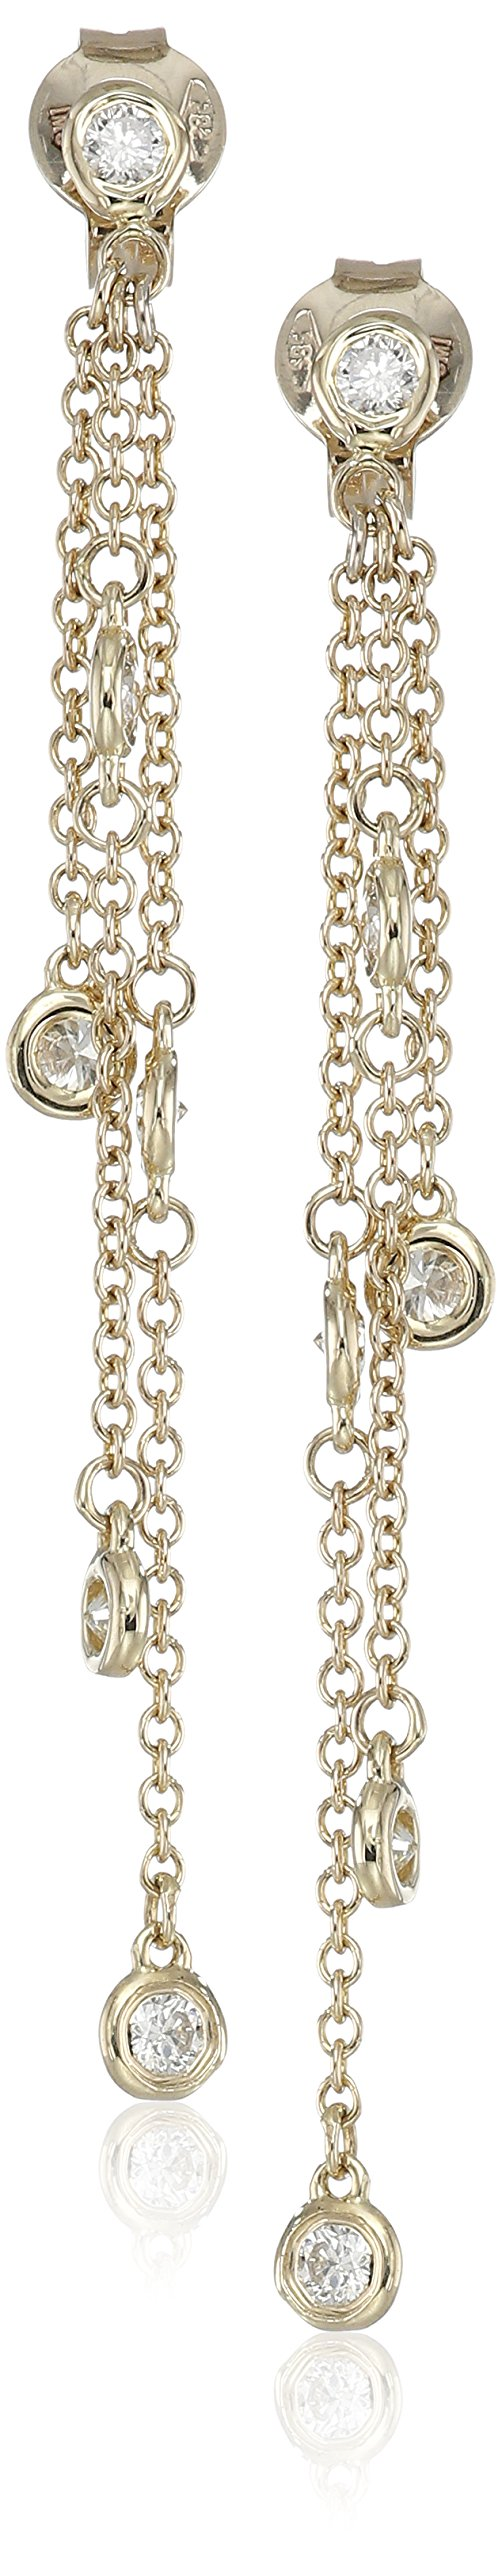 14k Yellow Gold Floating Diamond Dangle Earrings (1/2cttw, K-L Color, I1-I2 Clarity)